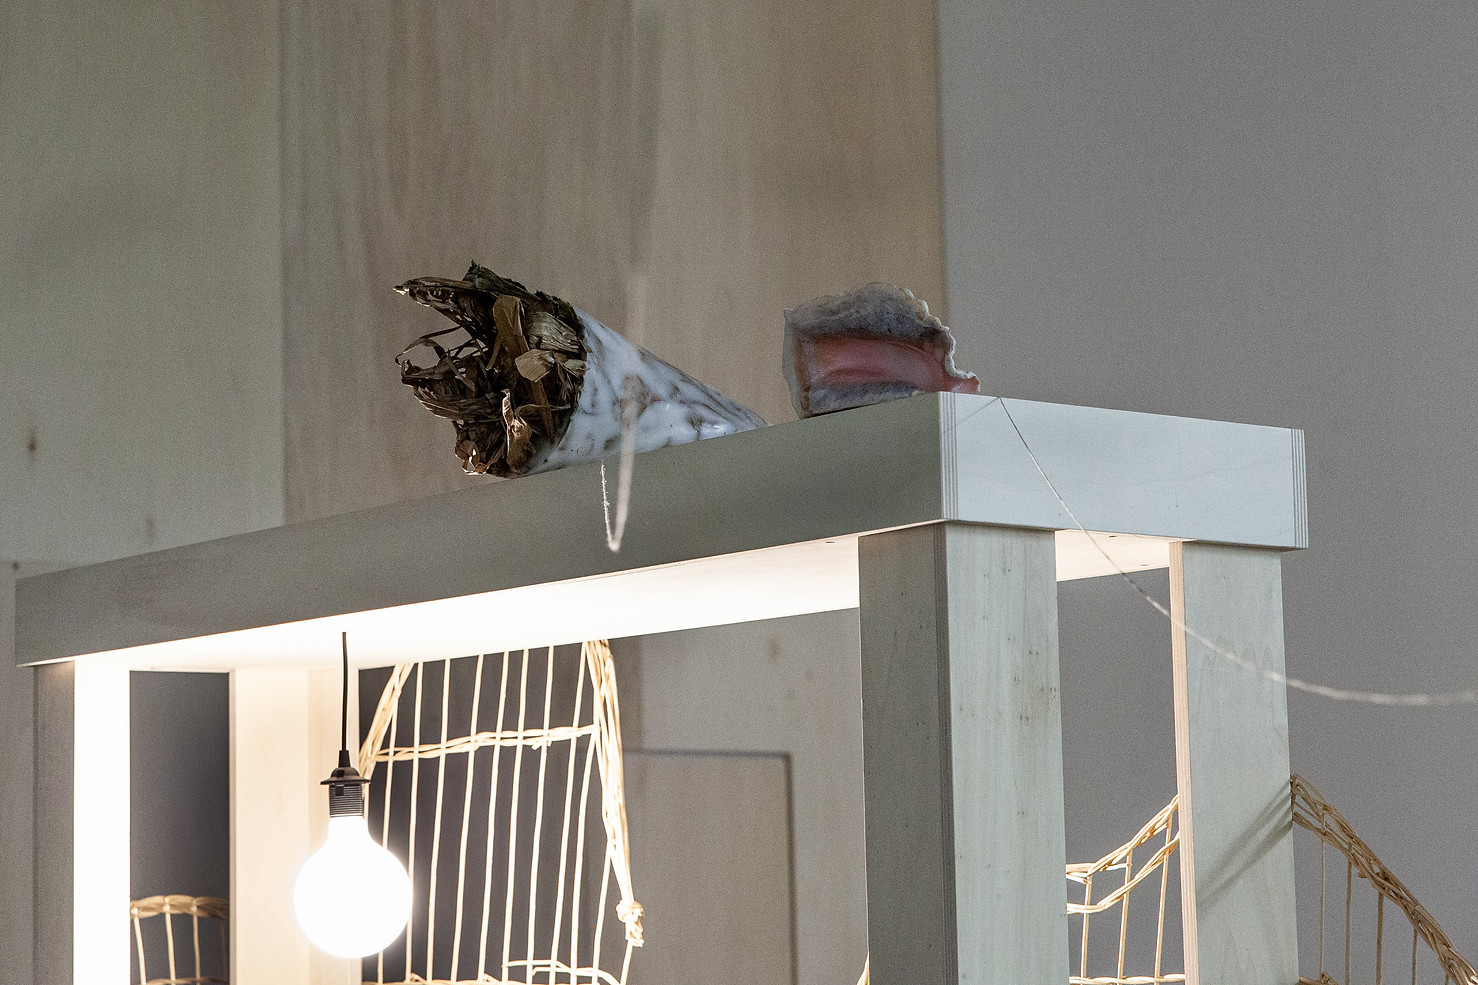 J'ai tué le papillon dans mon oreille (I have killed the butterfly in my ear), installation mix media, Magasin des horizons, Grenoble, France 2020, ©Camille Olivieri